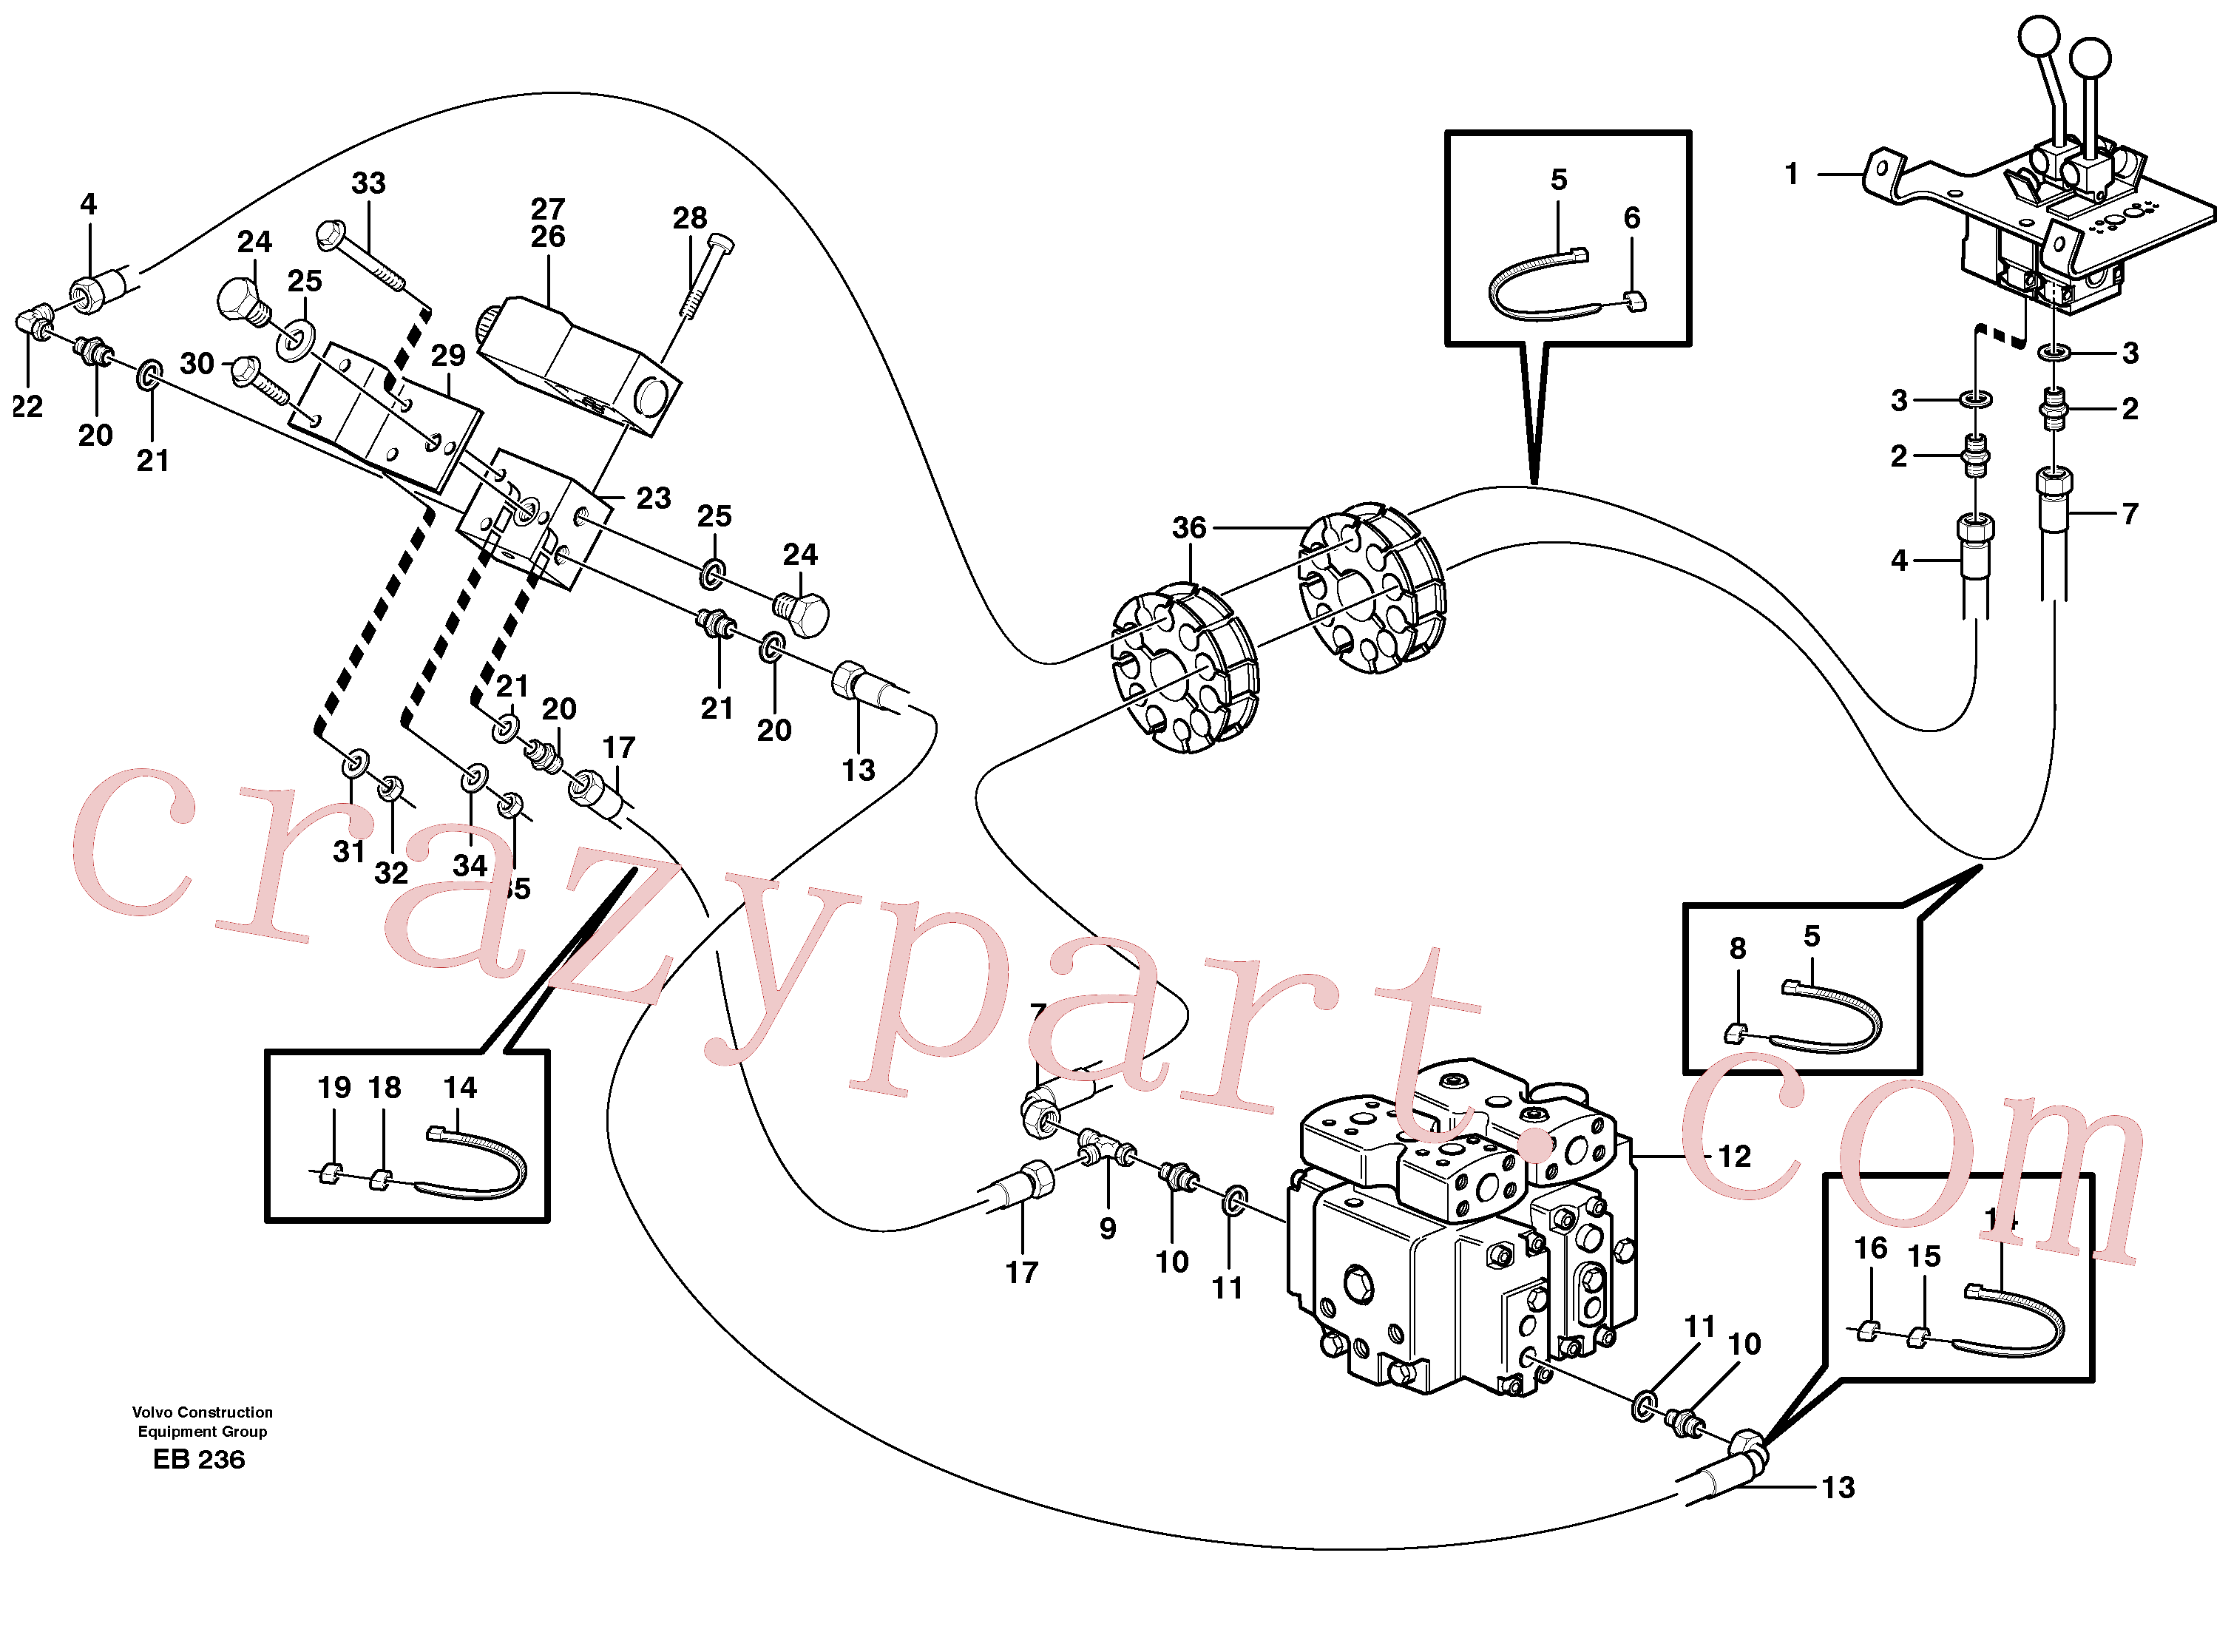 ZM7092202 for Volvo Servo - hydraulic, control lines, lift(EB236 assembly)